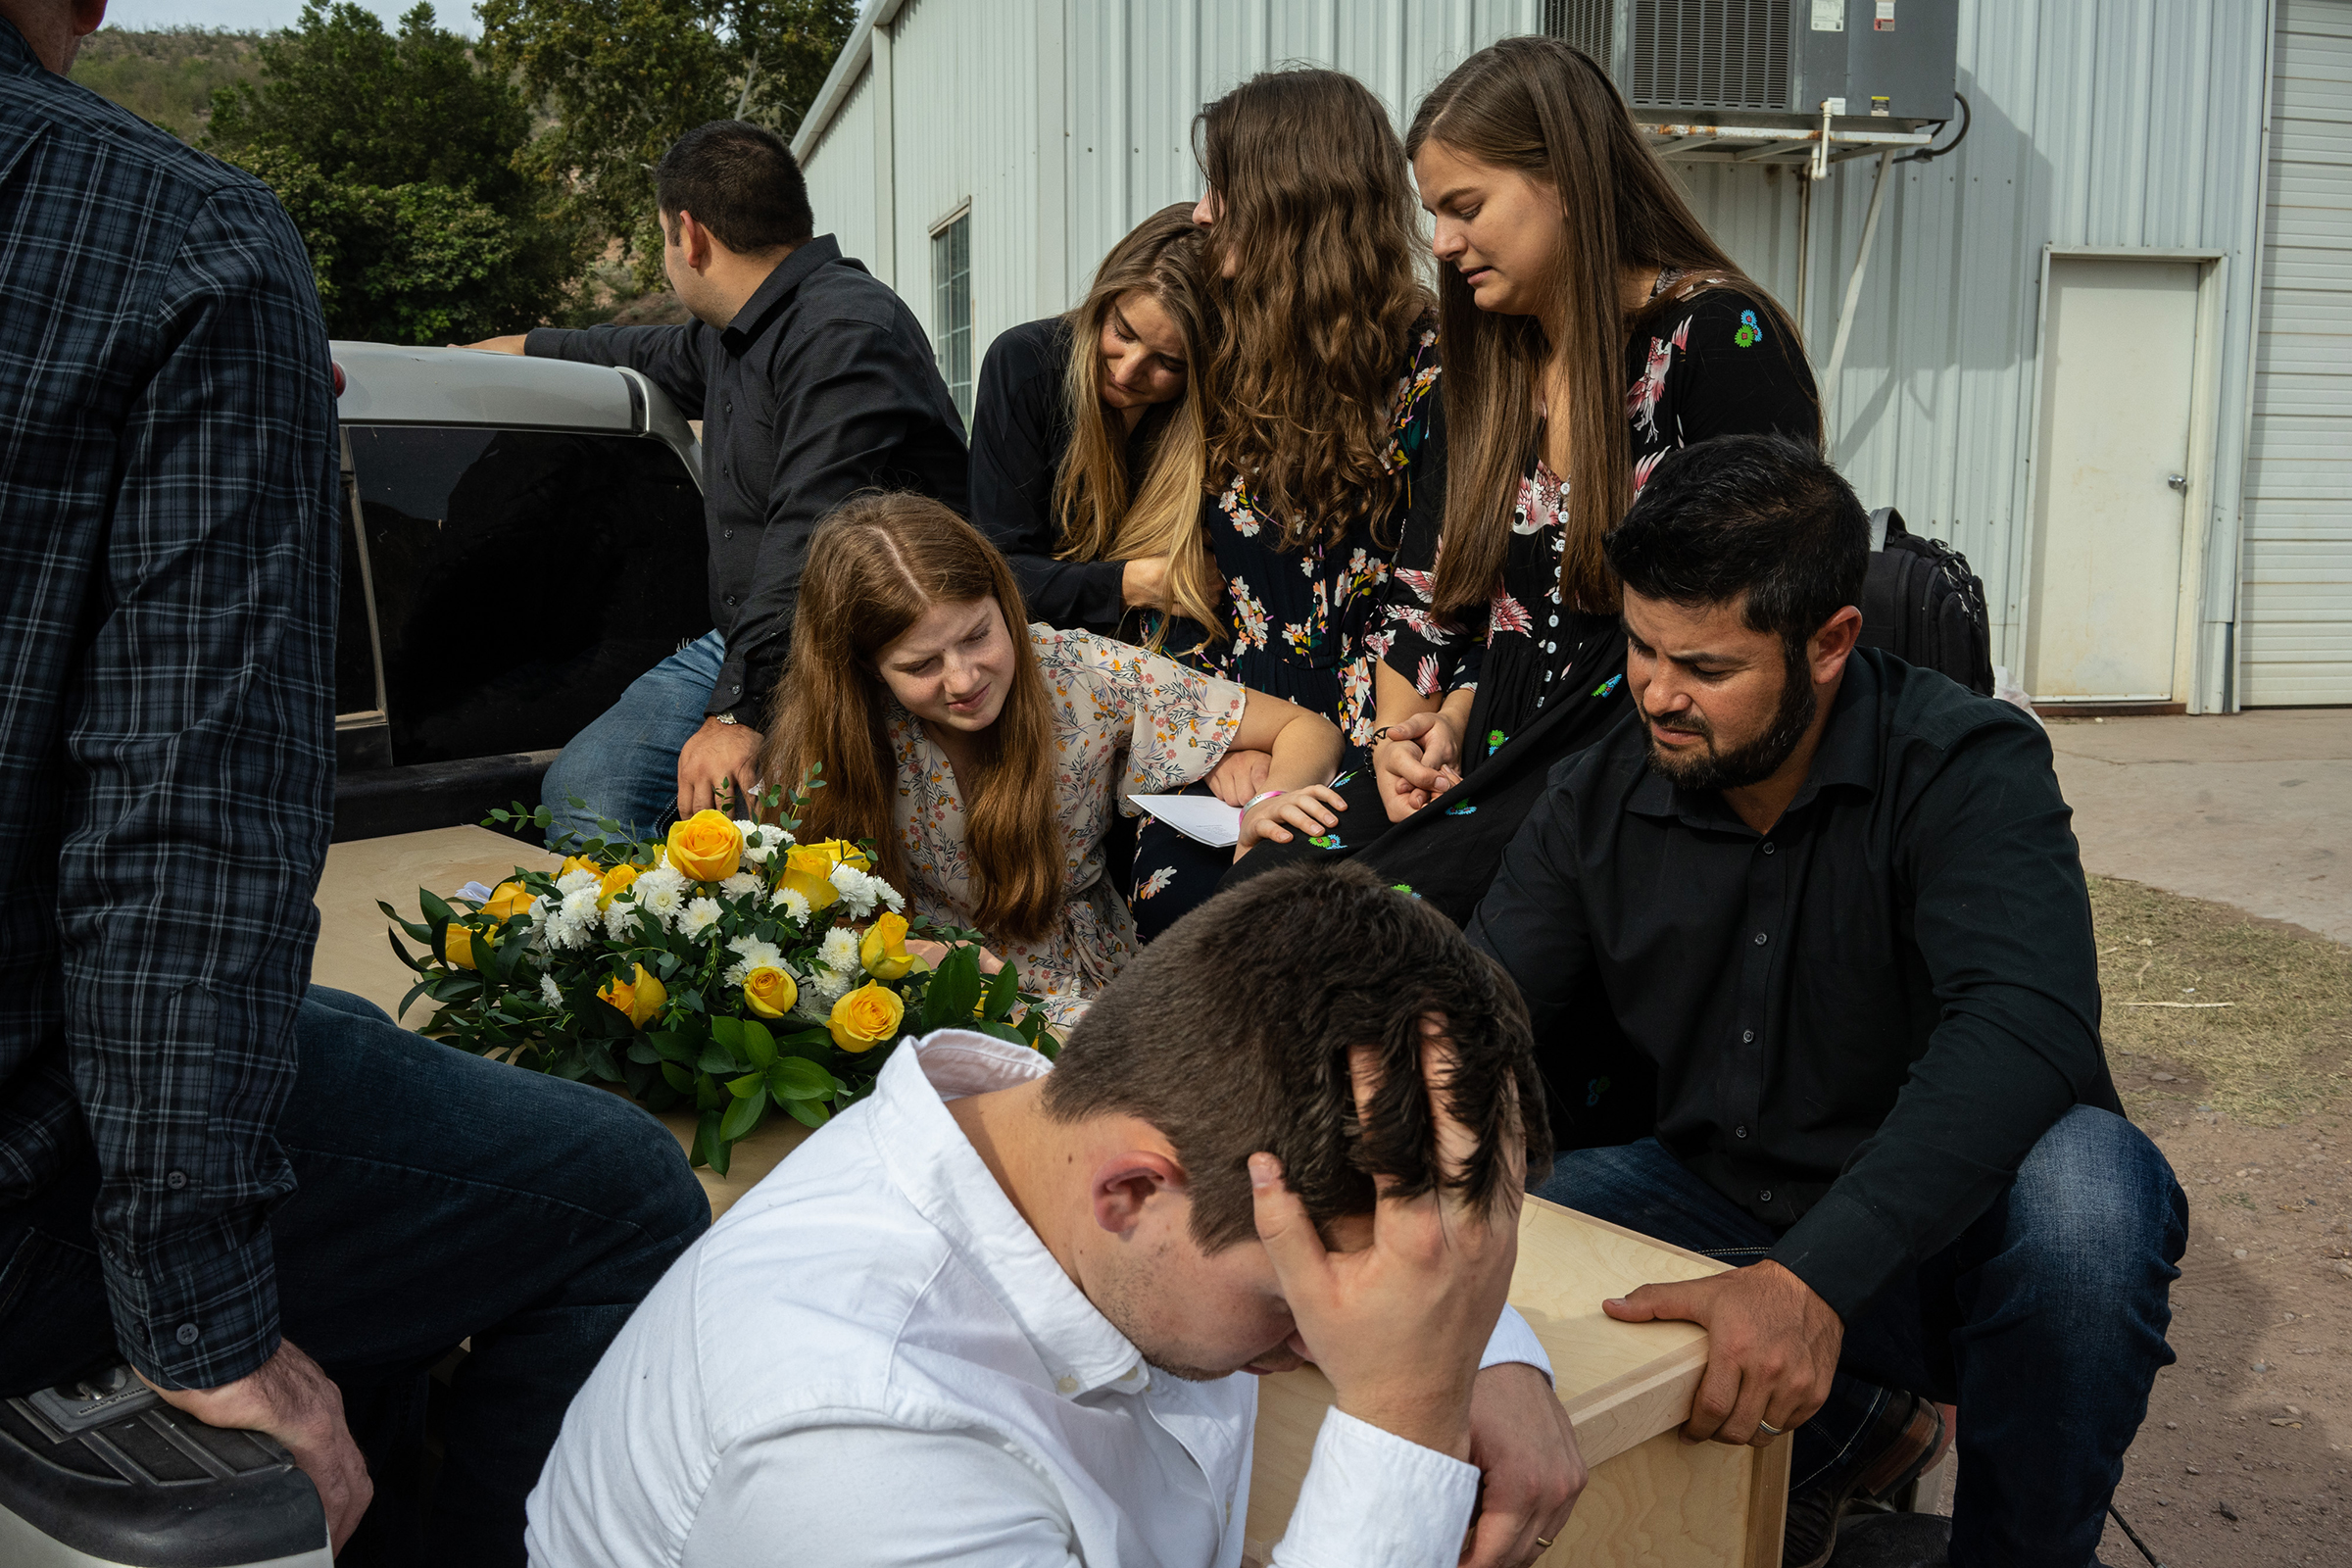 Relatives mourn as a coffin is transported to the graveyard.